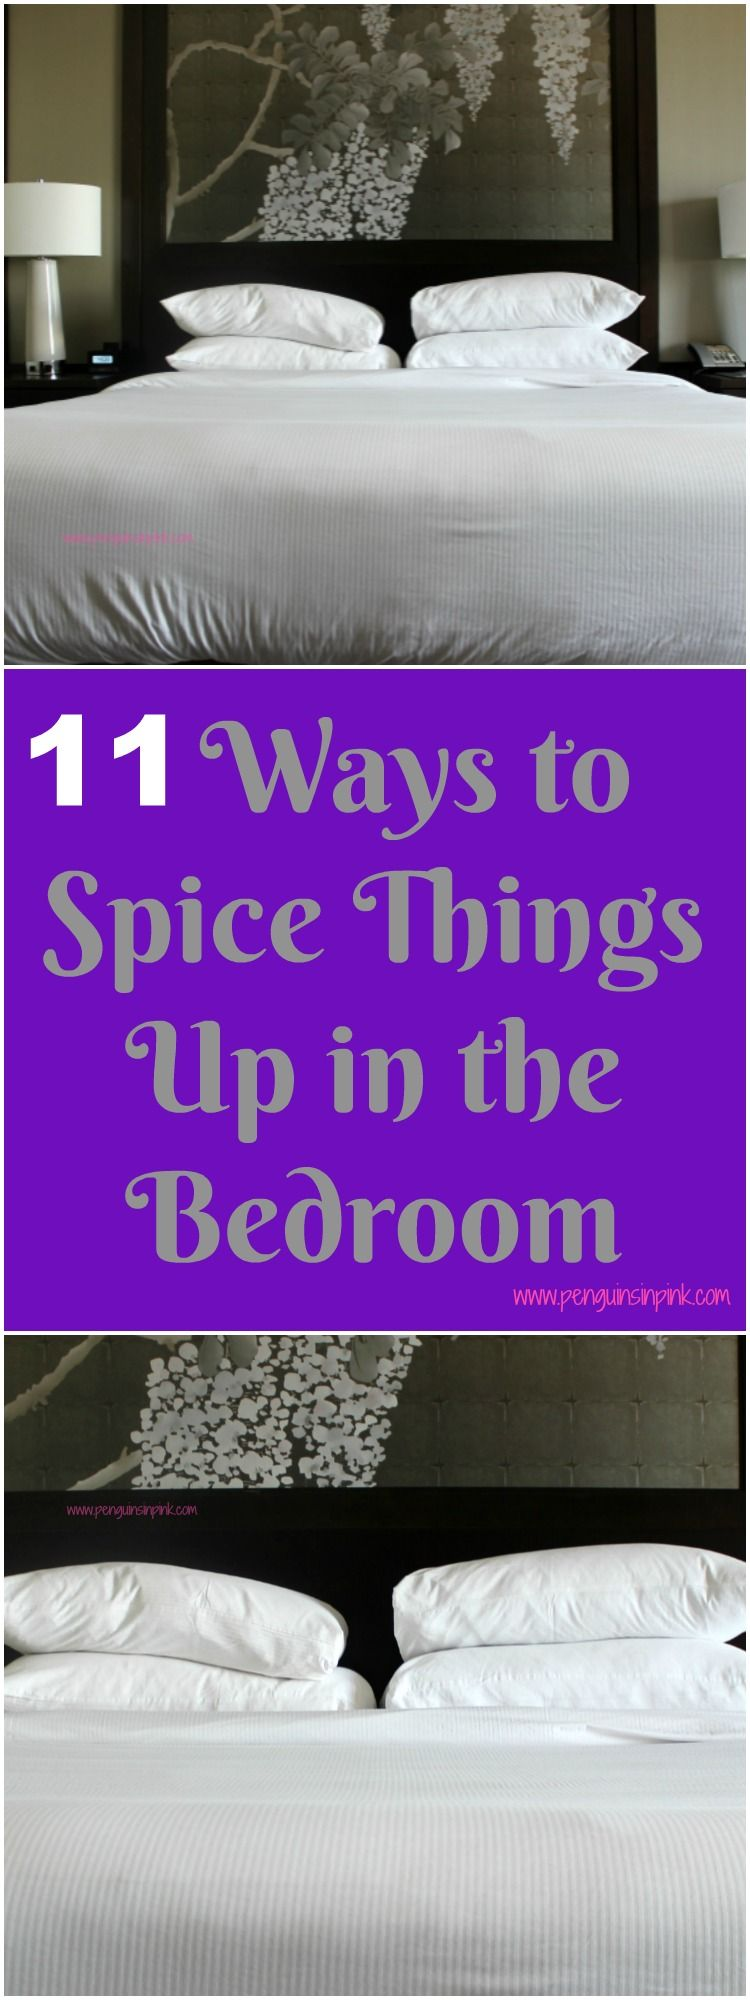 Fun things to spice up the bedroom